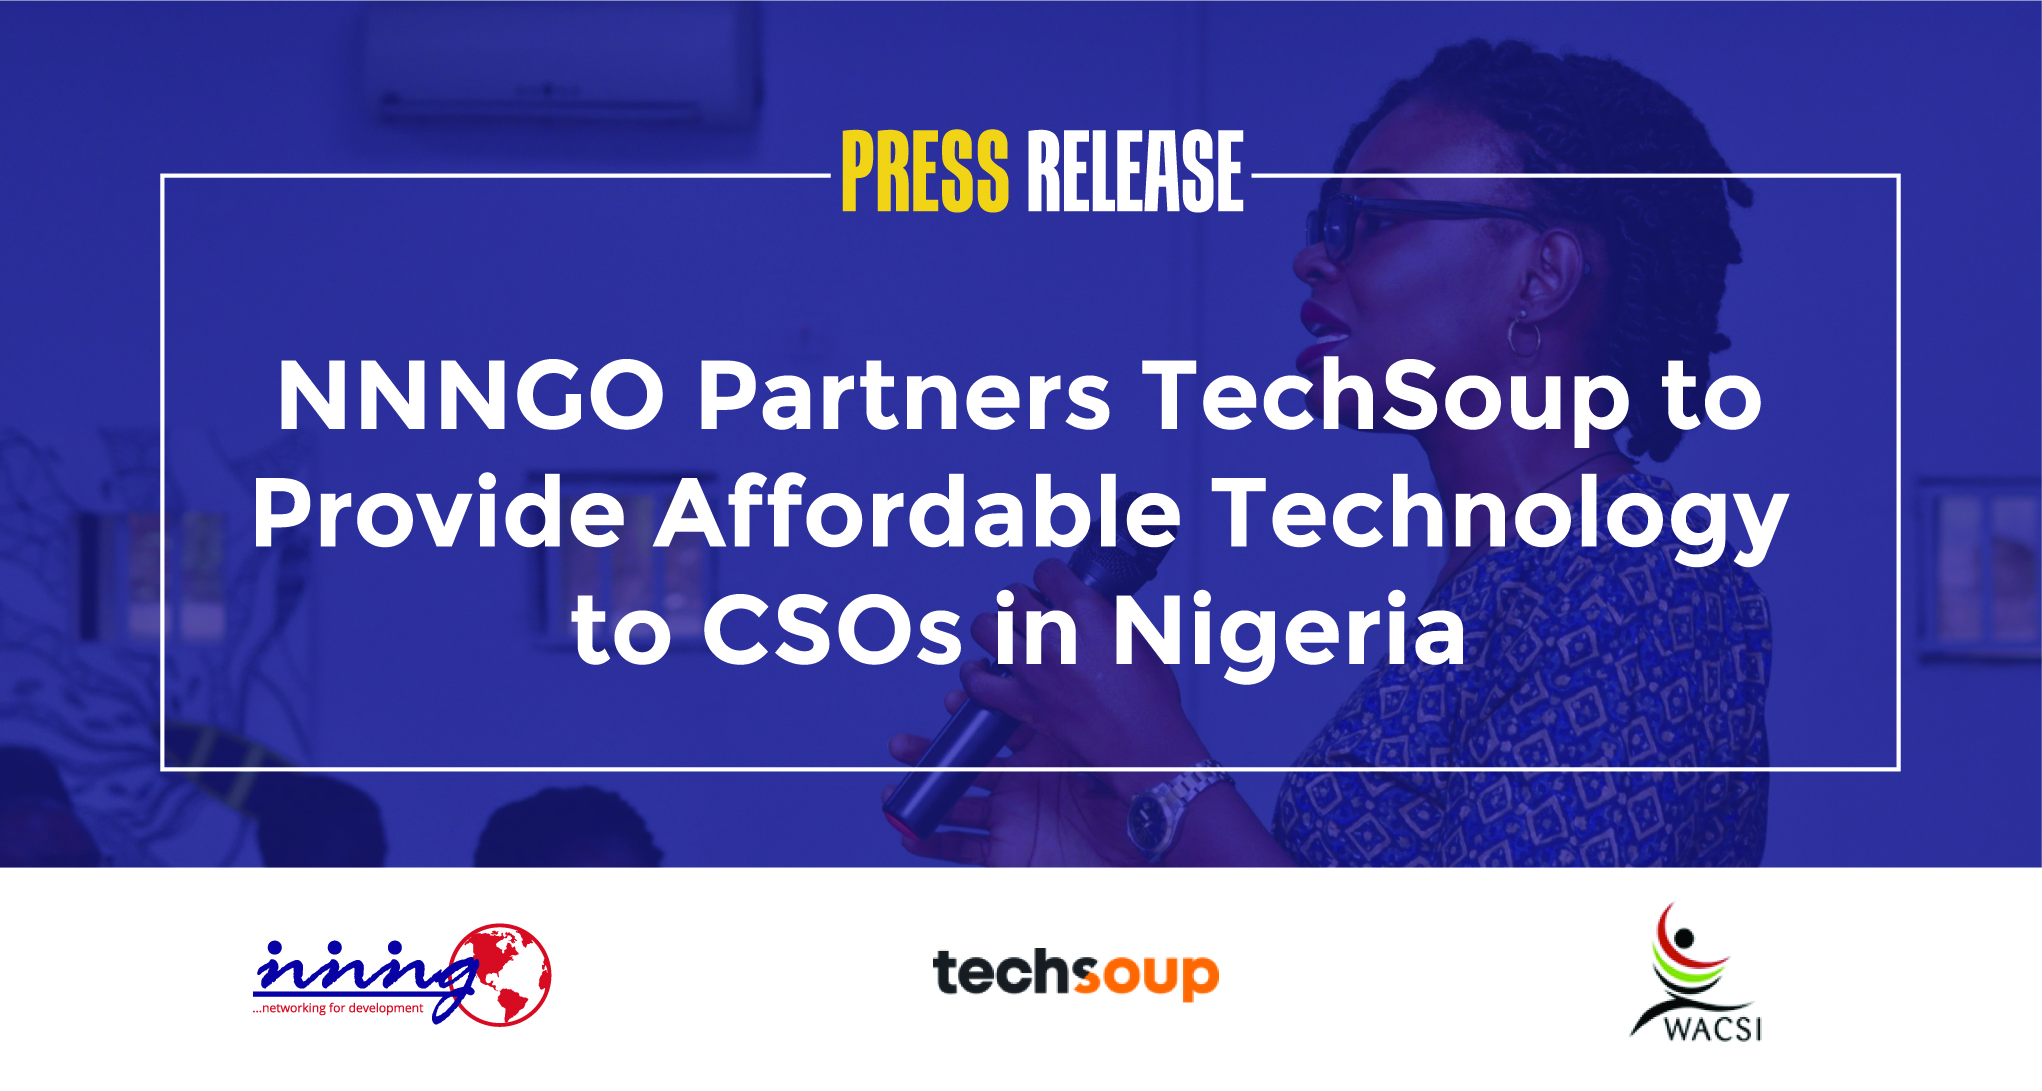 Press Release – NNNGO Partners TechSoup West Africa to Provide Affordable Technology to CSOs in Nigeria